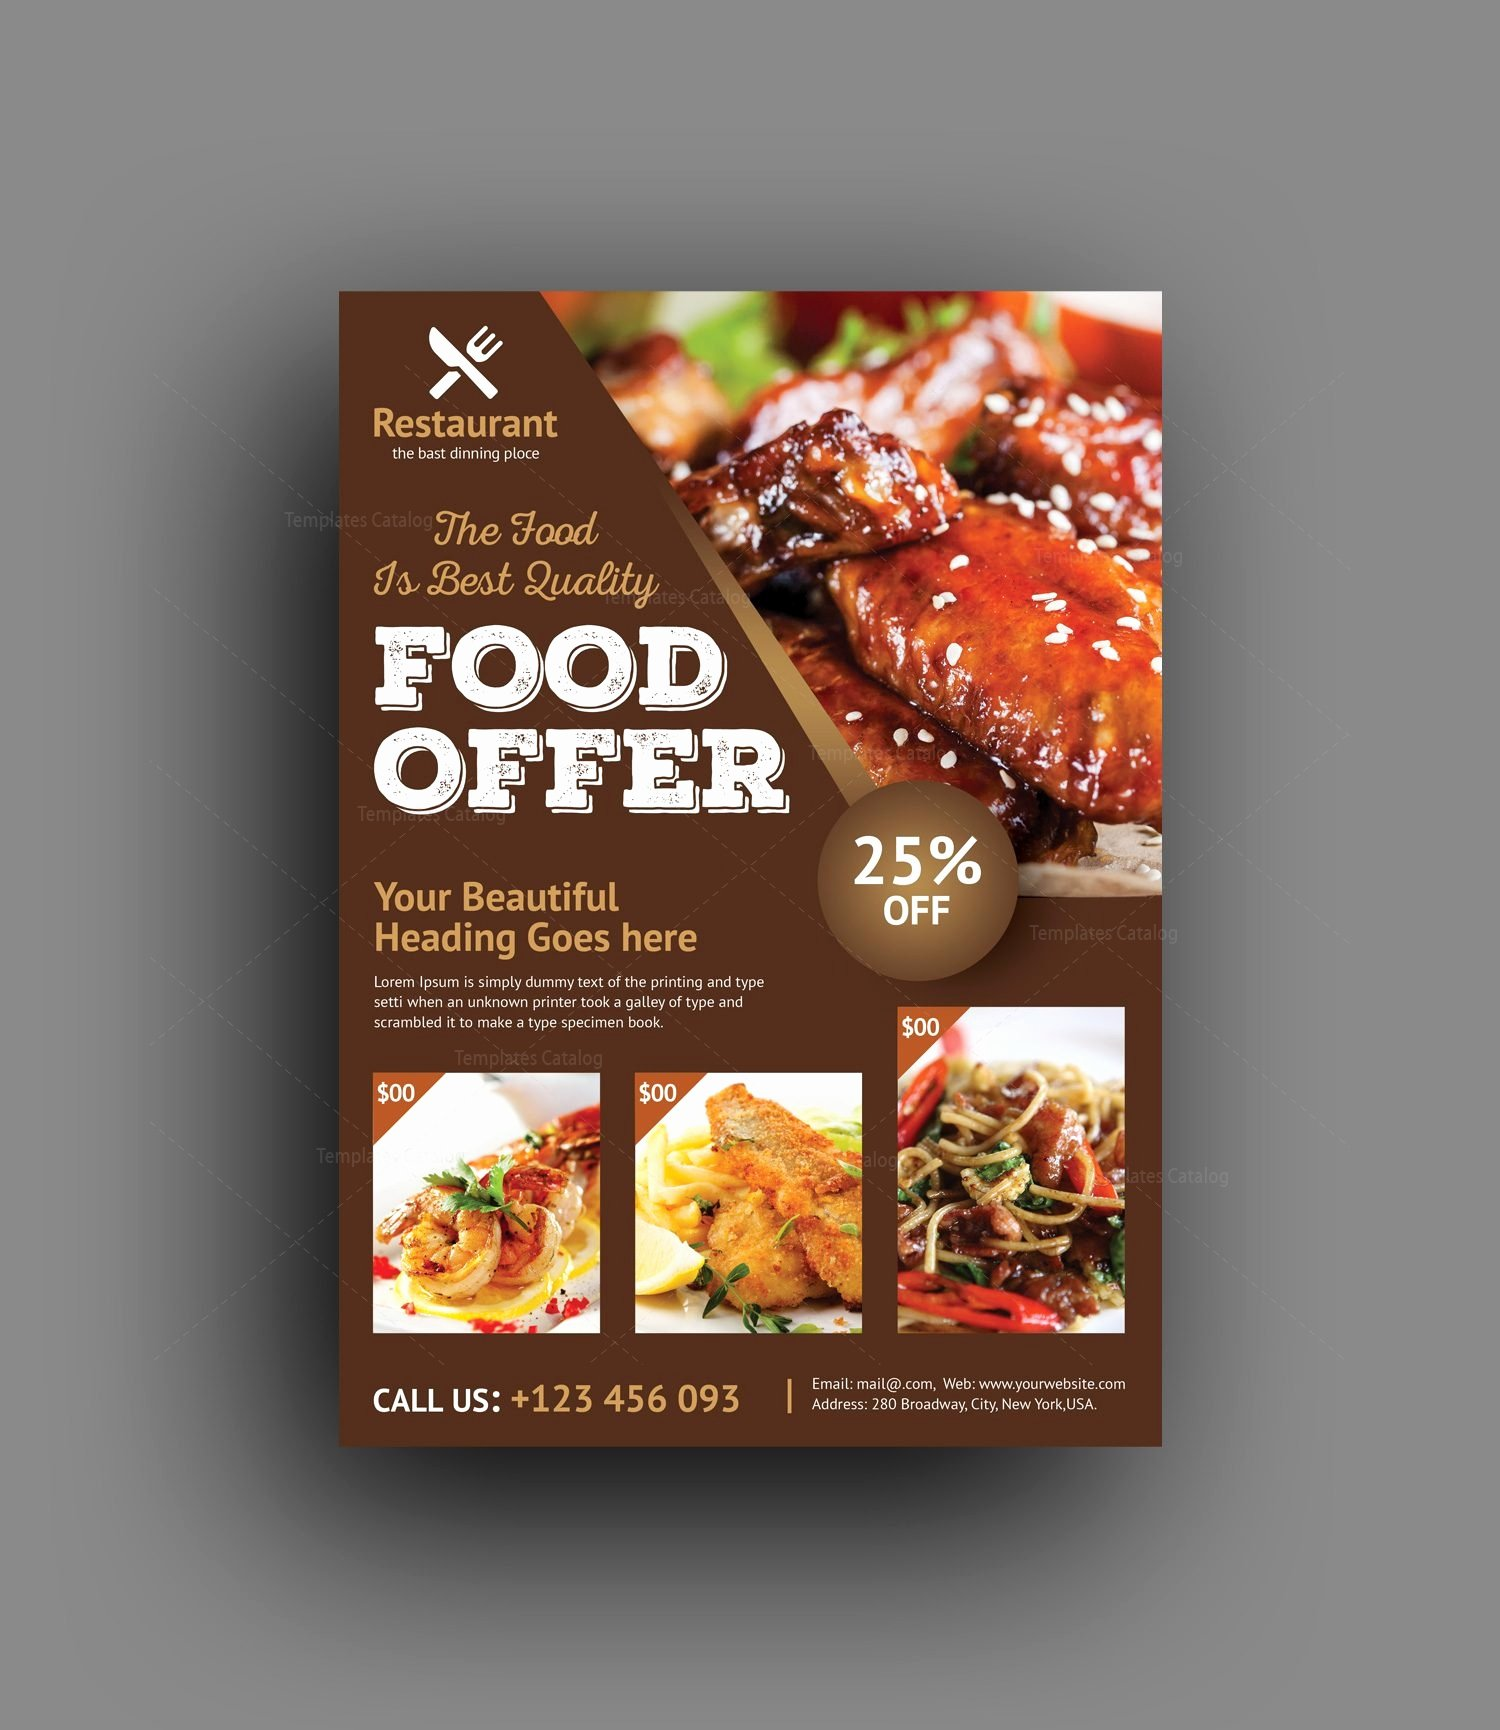 Restaurant Flyers Templates Free Awesome Luxury Restaurant Flyer Template Template Catalog